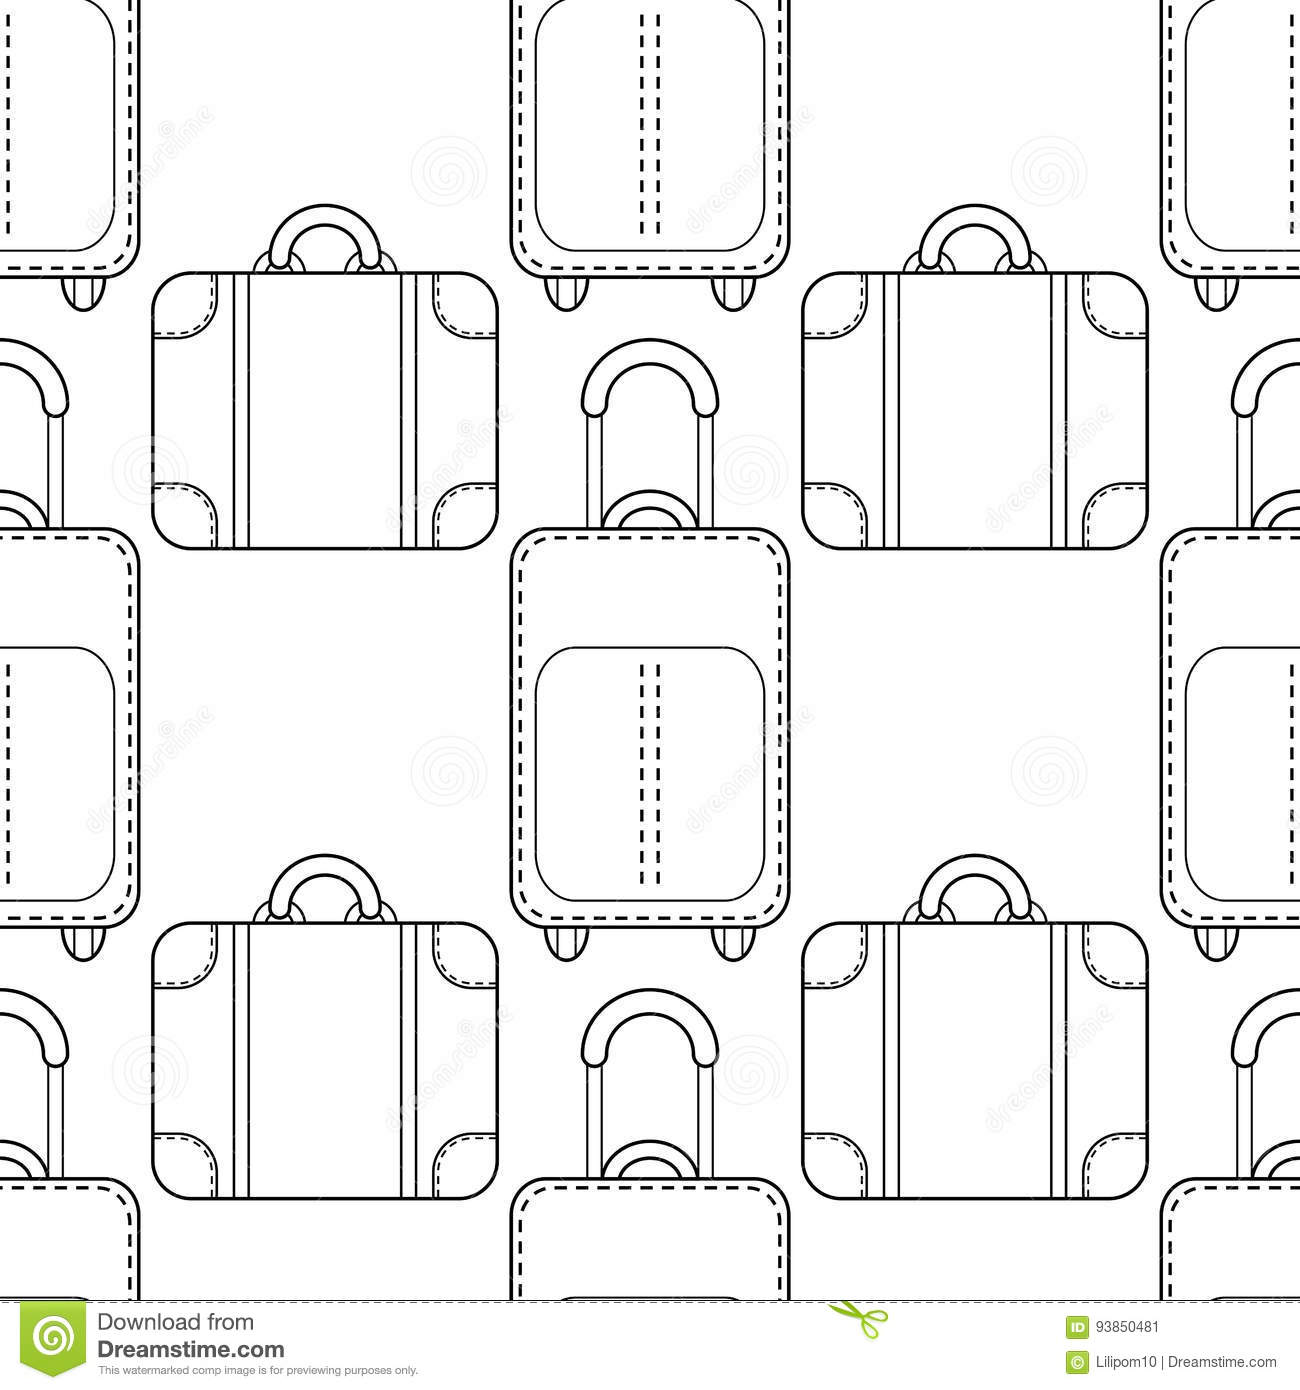 Black And White Seamless Pattern With Fashion Bags For